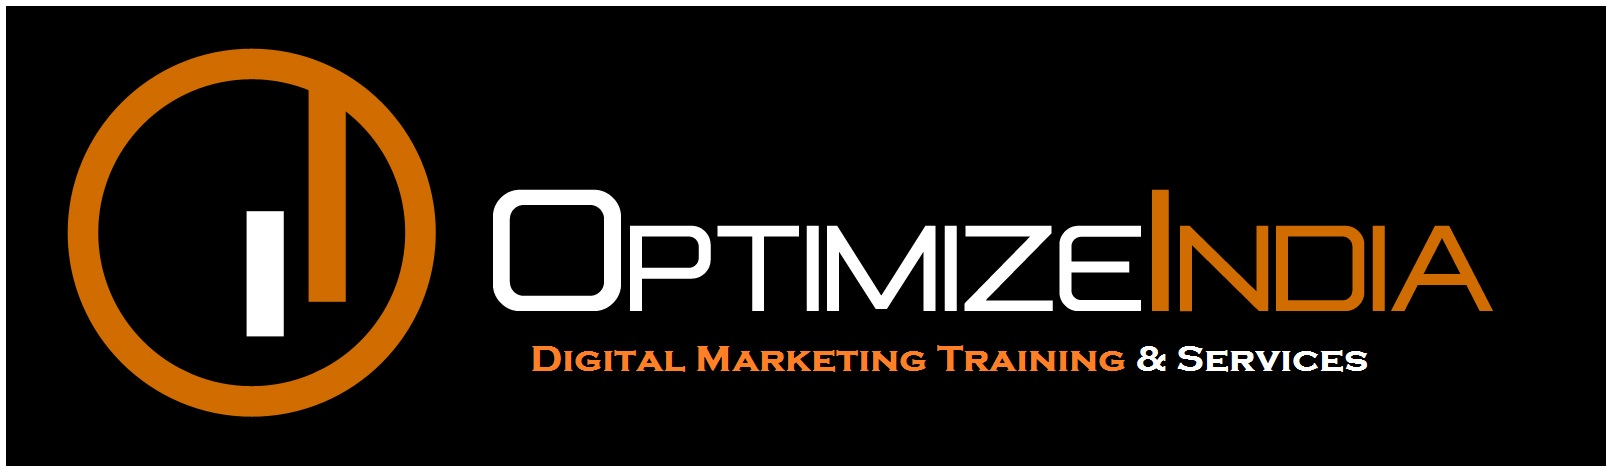 Best Digital Marketing Institute in Bangalore, India